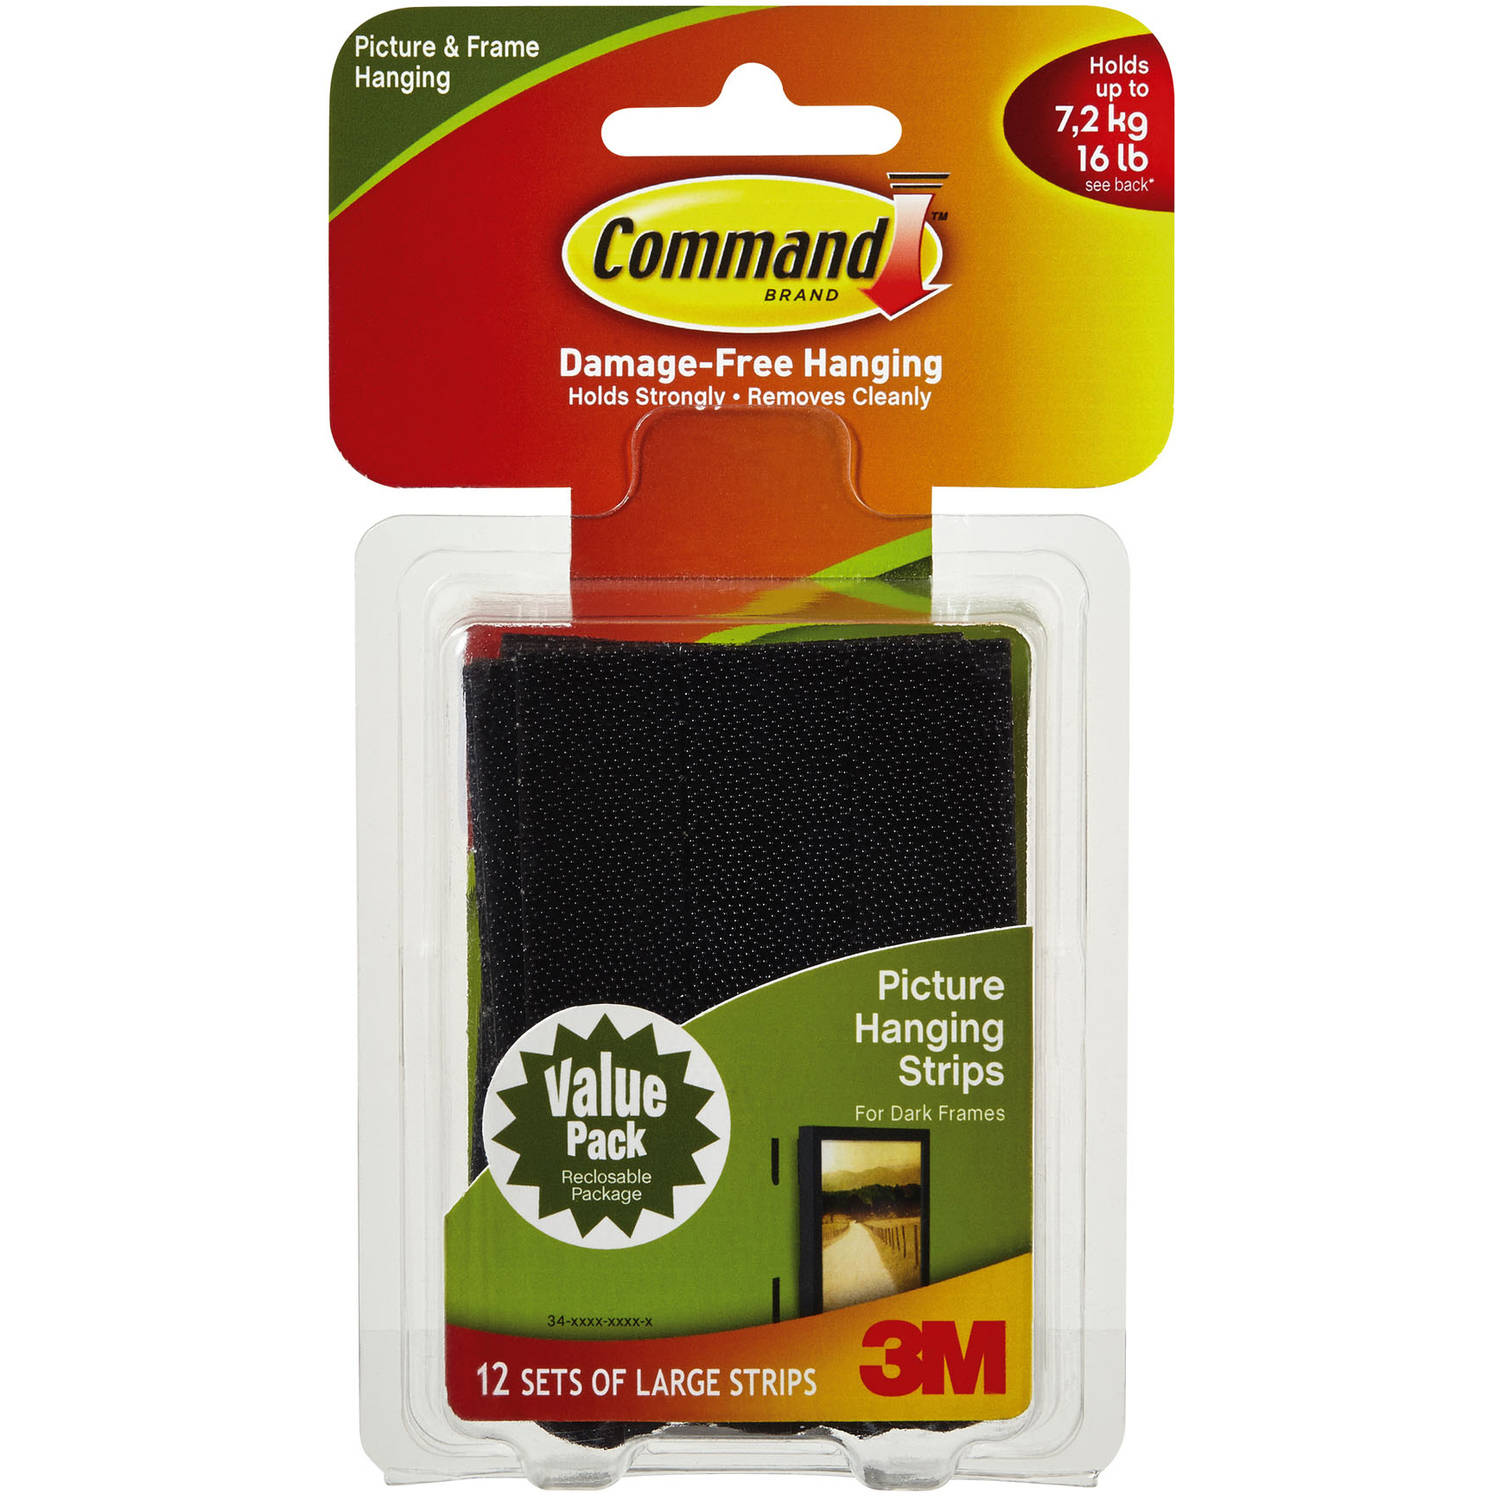 Command Large Black Picture Hanging Strips Value Pack, 12 Sets of Strips